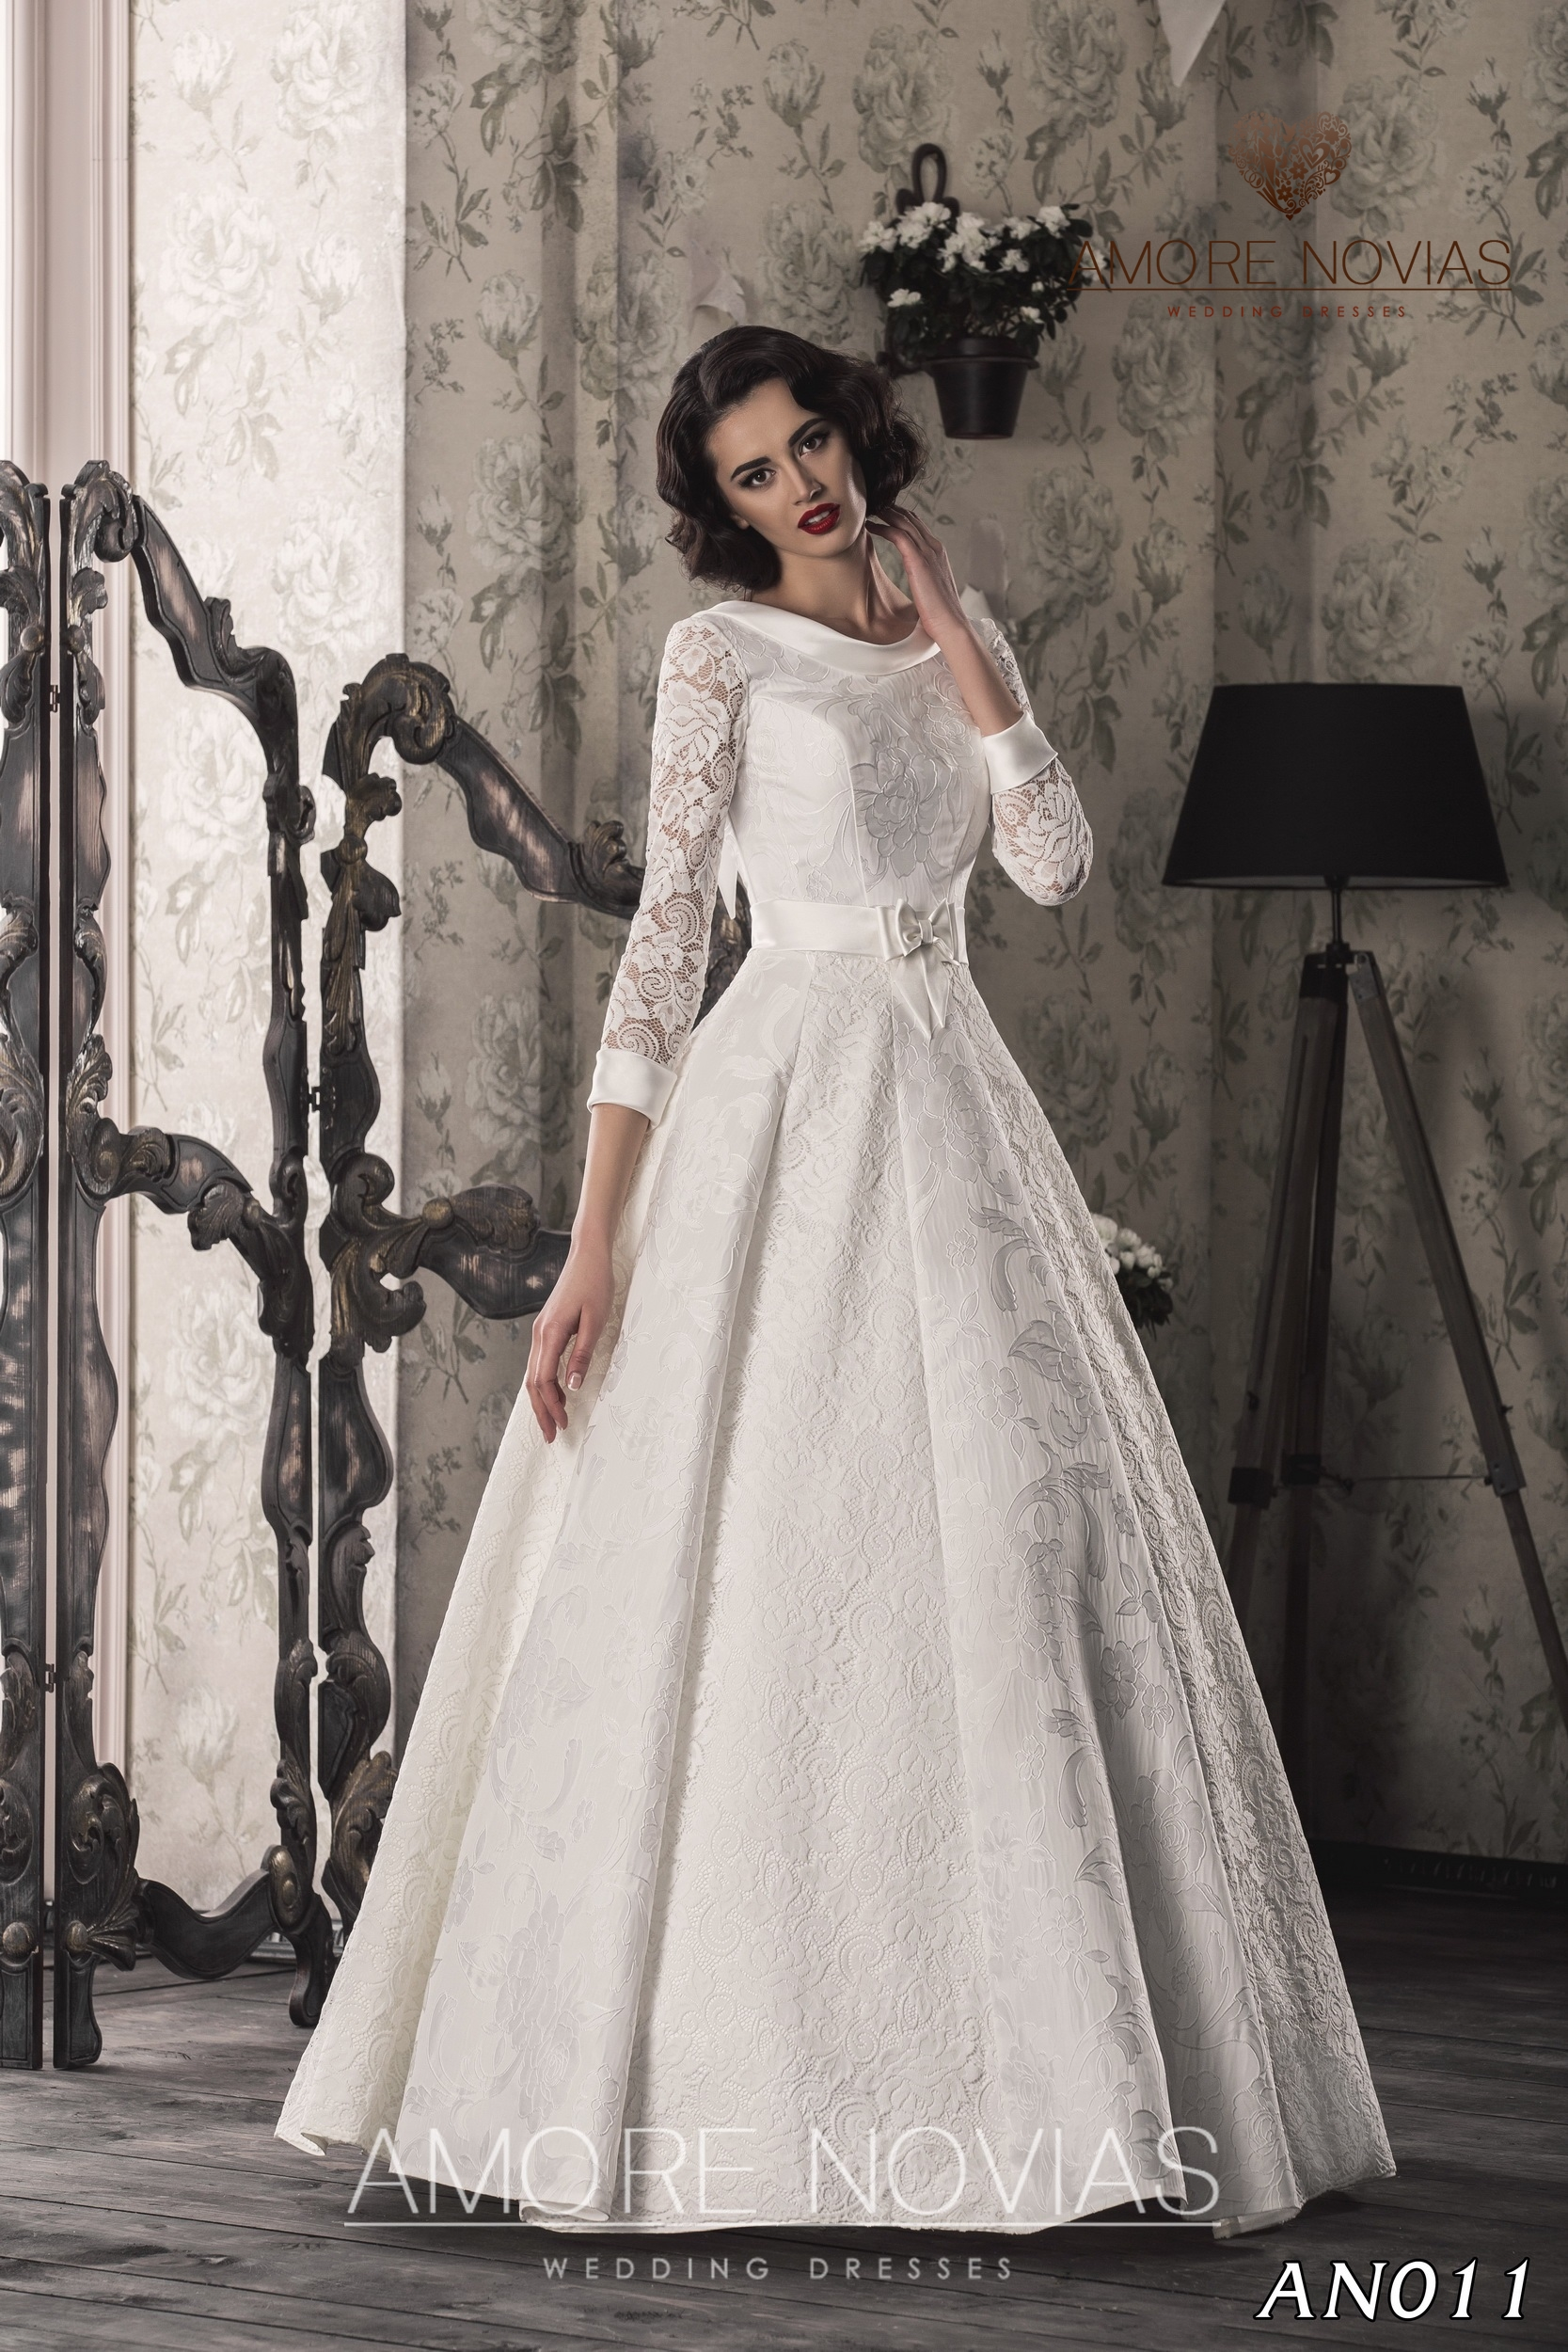 https://amore-novias.com/images/stories/virtuemart/product/an011.jpg